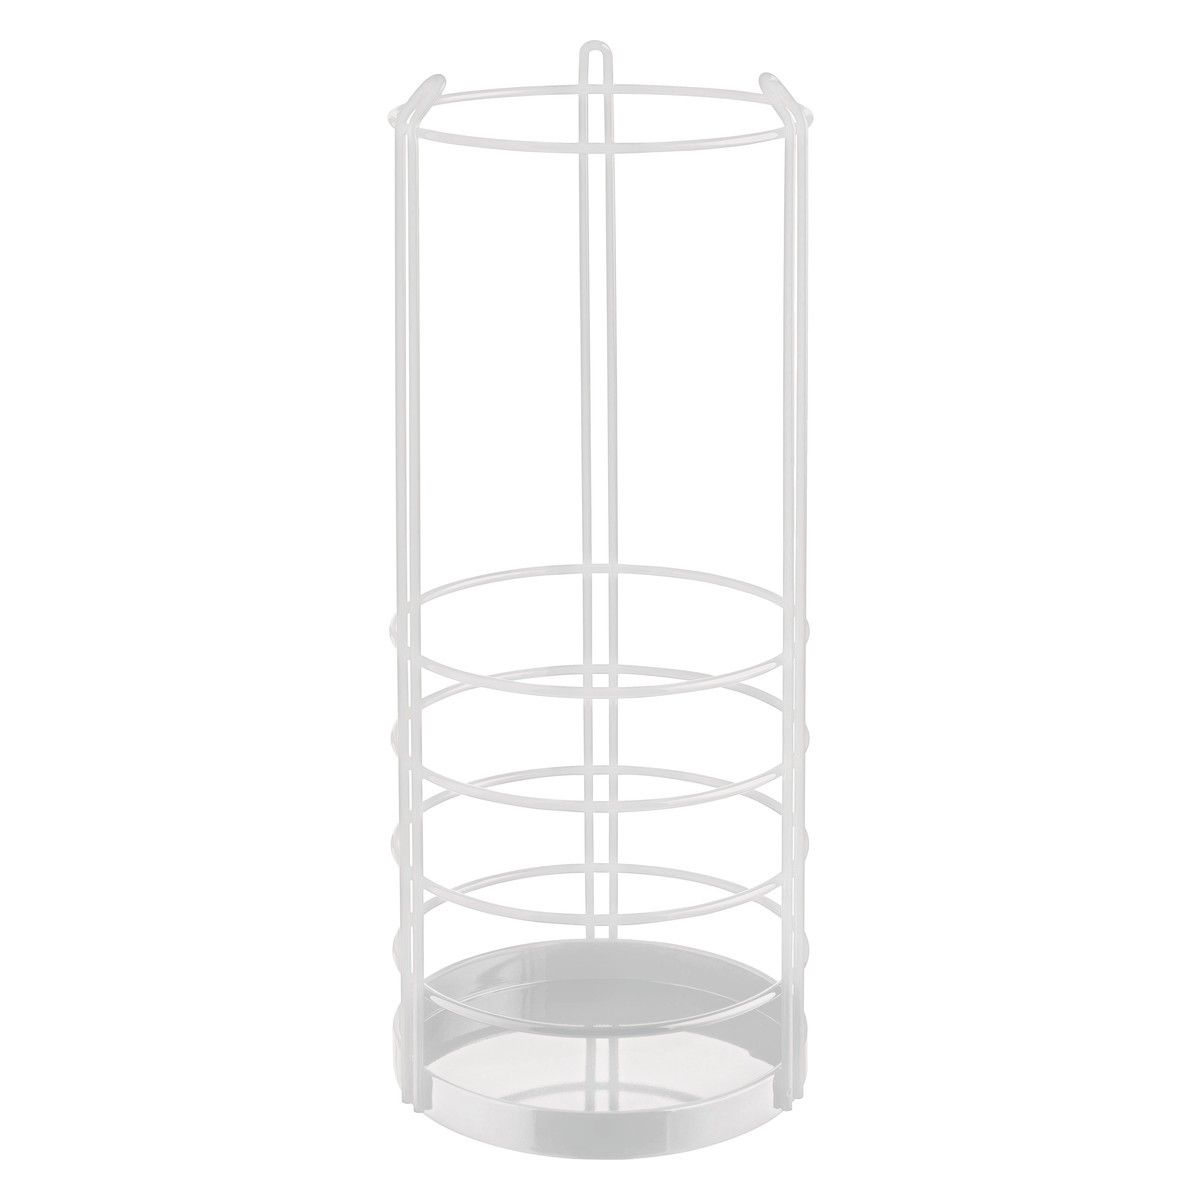 SAUNDERS White Metal Umbrella Stand